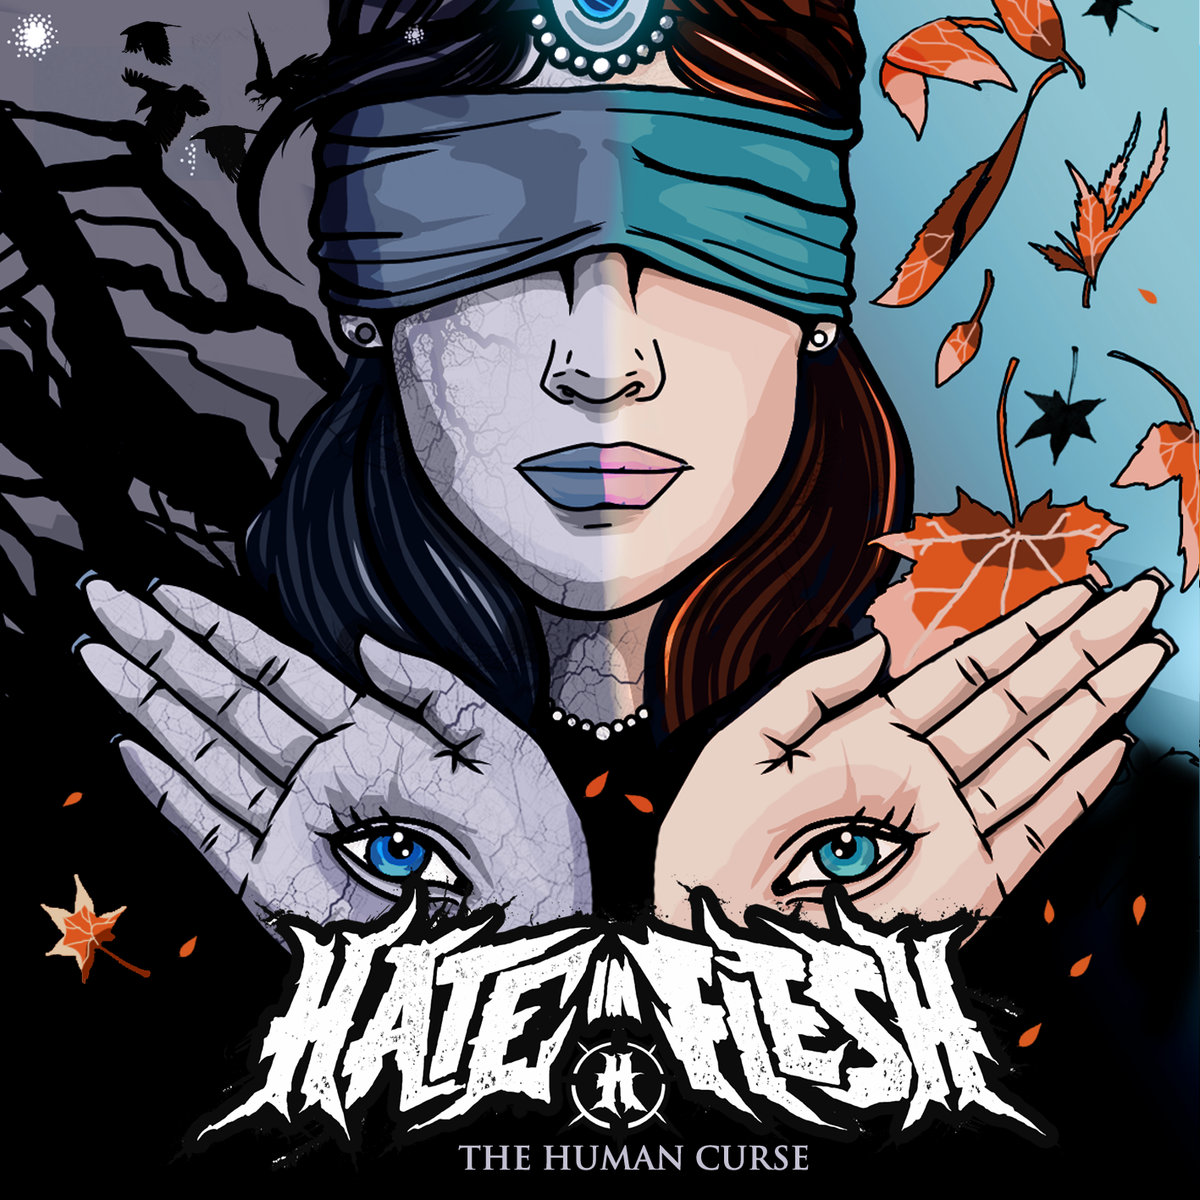 HATE IN FLESH - THE HUMAN CURSE